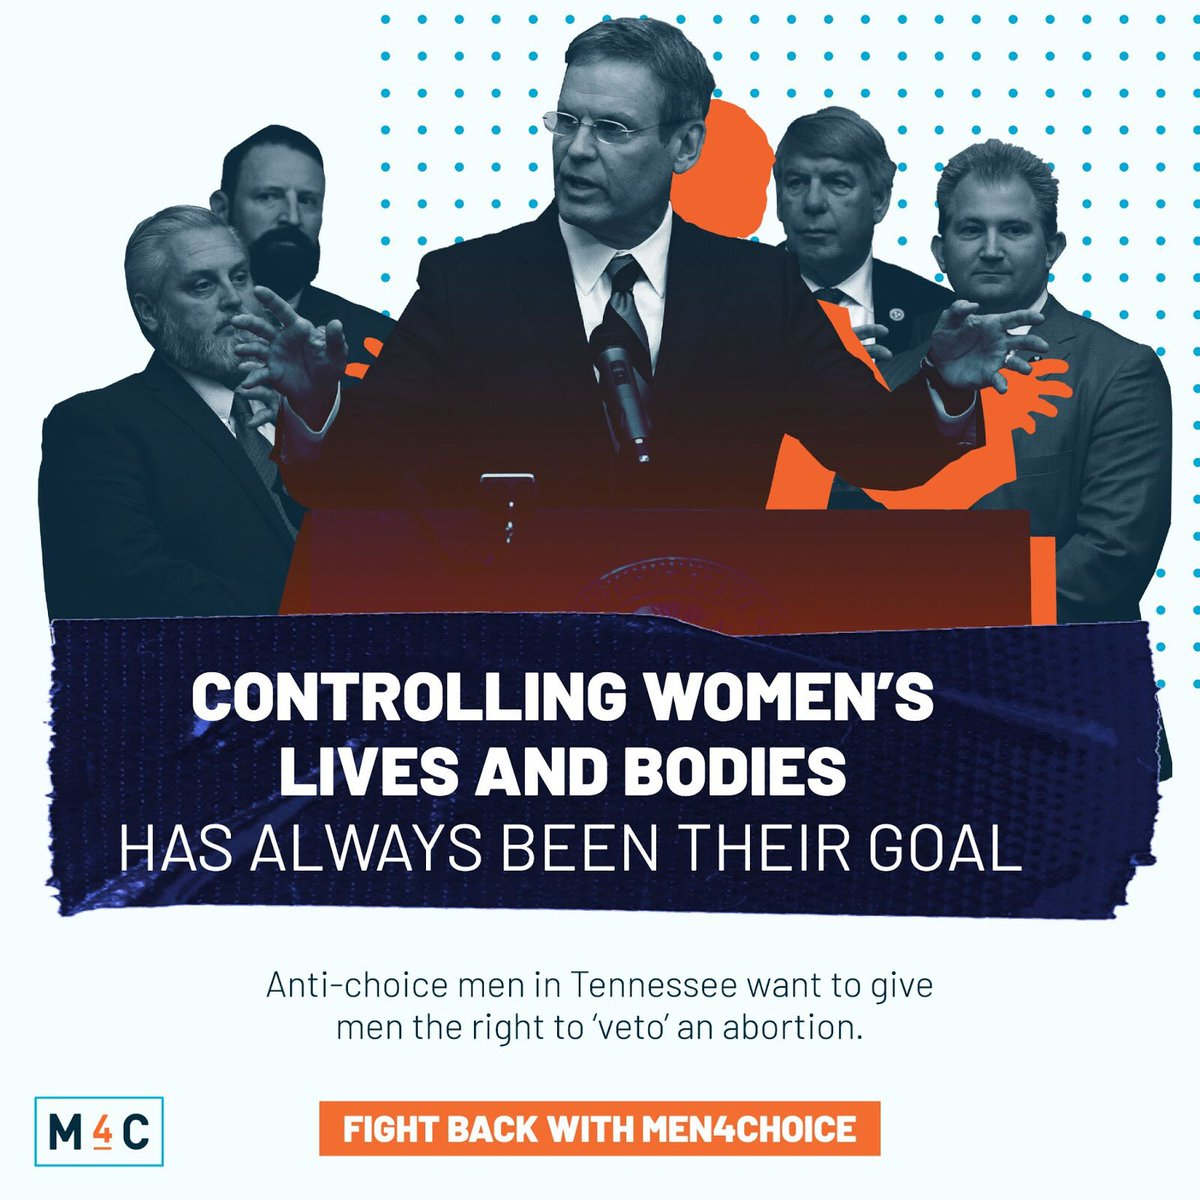 There are men in America using their power to rob people of the right to control their own bodies.   The rest of us, those who support the right to choose & access to abortion, must step up.  Men should NOT hold DOMINION over other people's lives.  #ControlIsTheirGoal https://t.co/JIpoTRaQCM